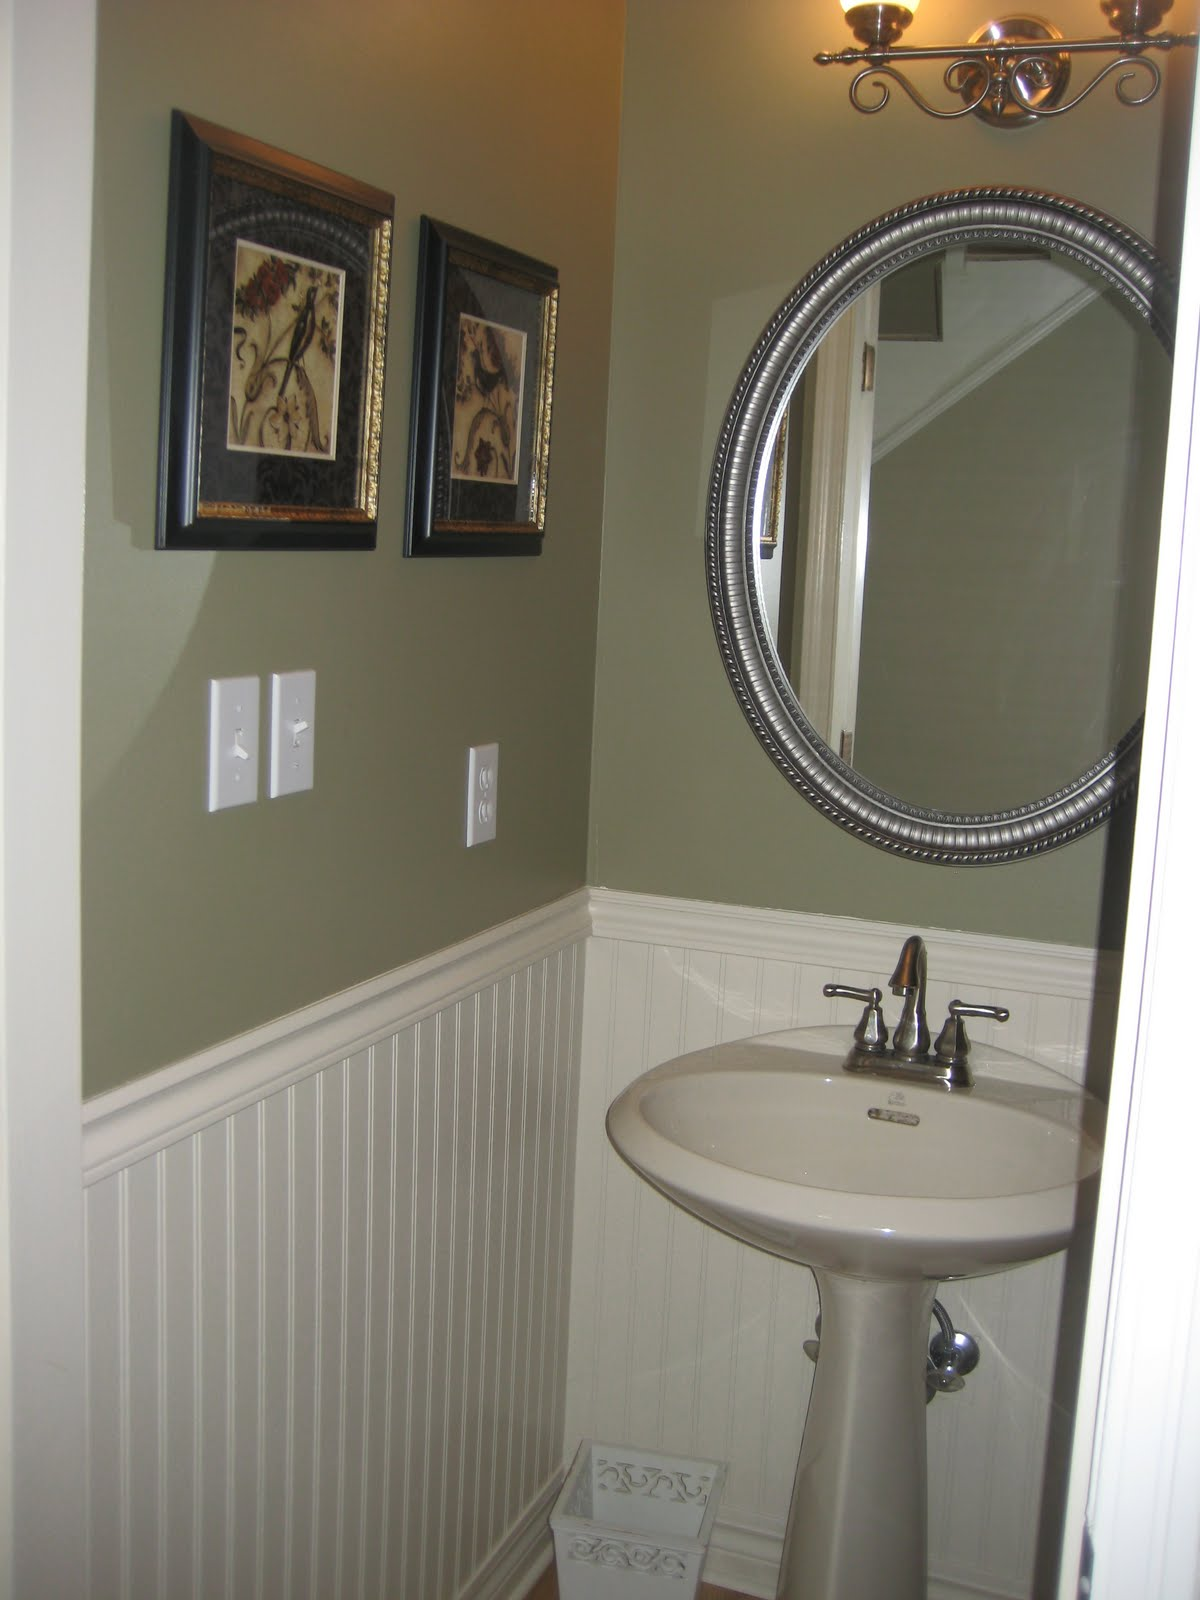 Remodelaholic | New Paint Job in Small Bathroom Remodel ...